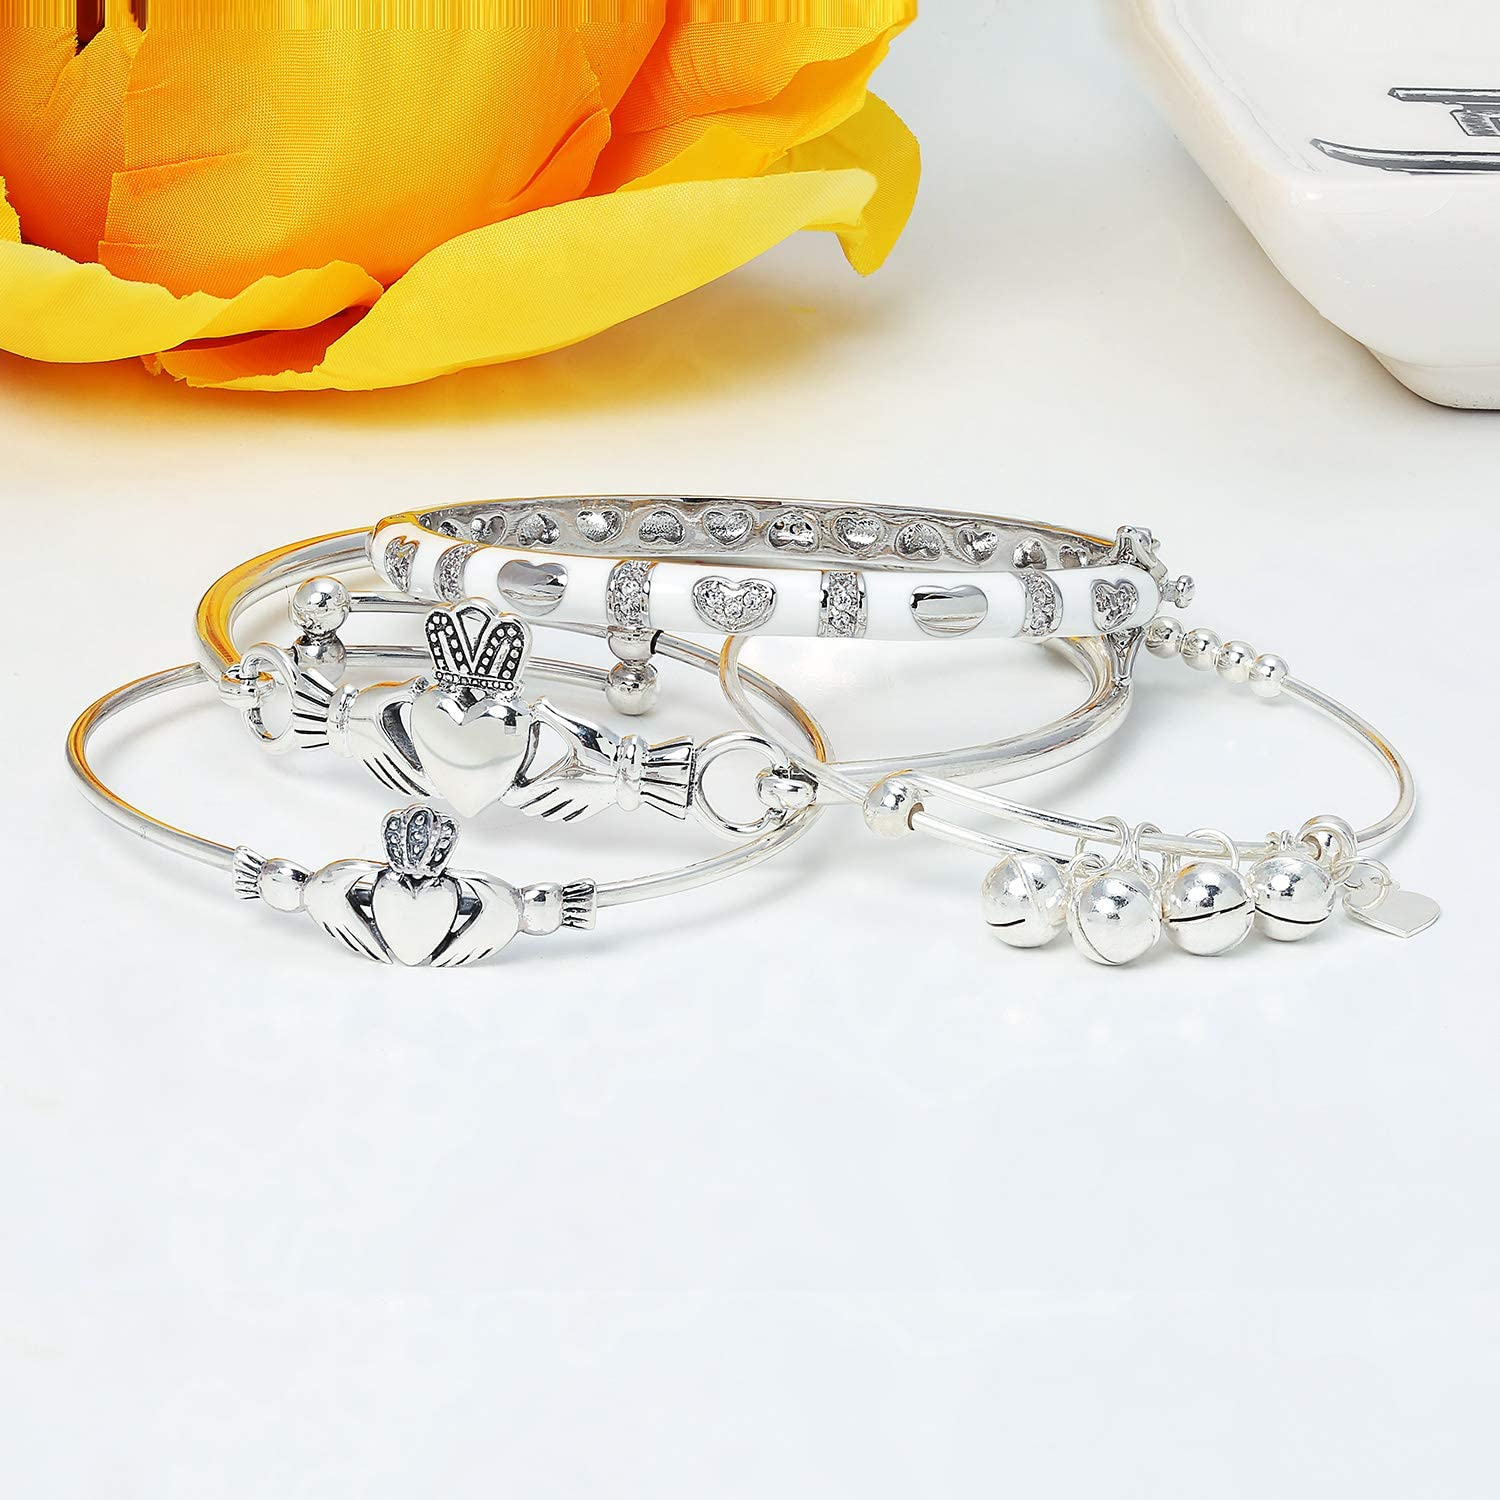 Tiny White or Pink Bangle Bracelet for Women Enamel CZ Pave Hearts Silver Gold Plated Brass for Small Wrists